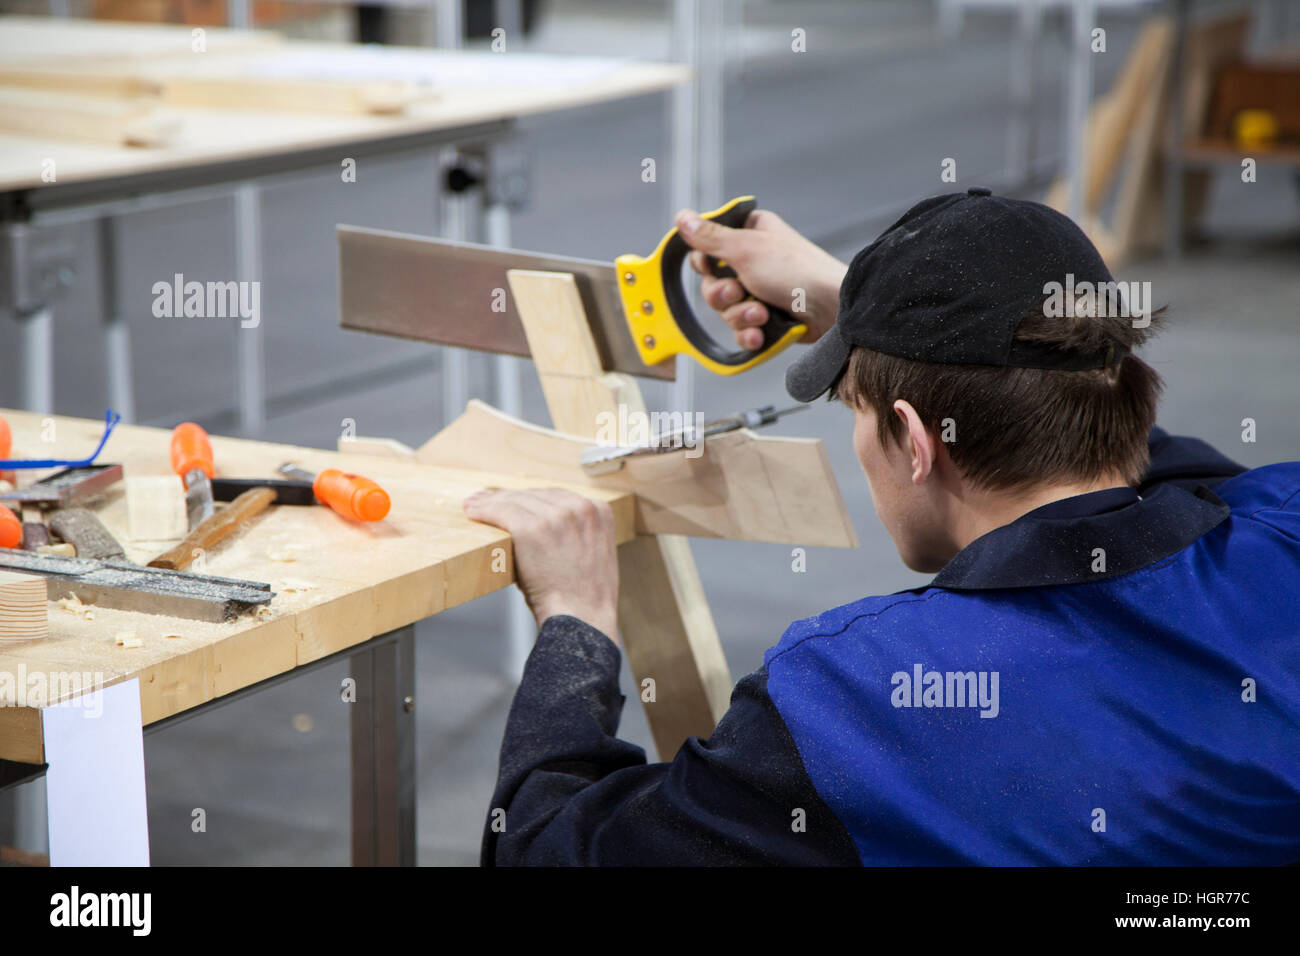 Carpenter in a blue uniform working with a saw and wood at the workshop. Young Caucasian man at the workbench with - Stock Image